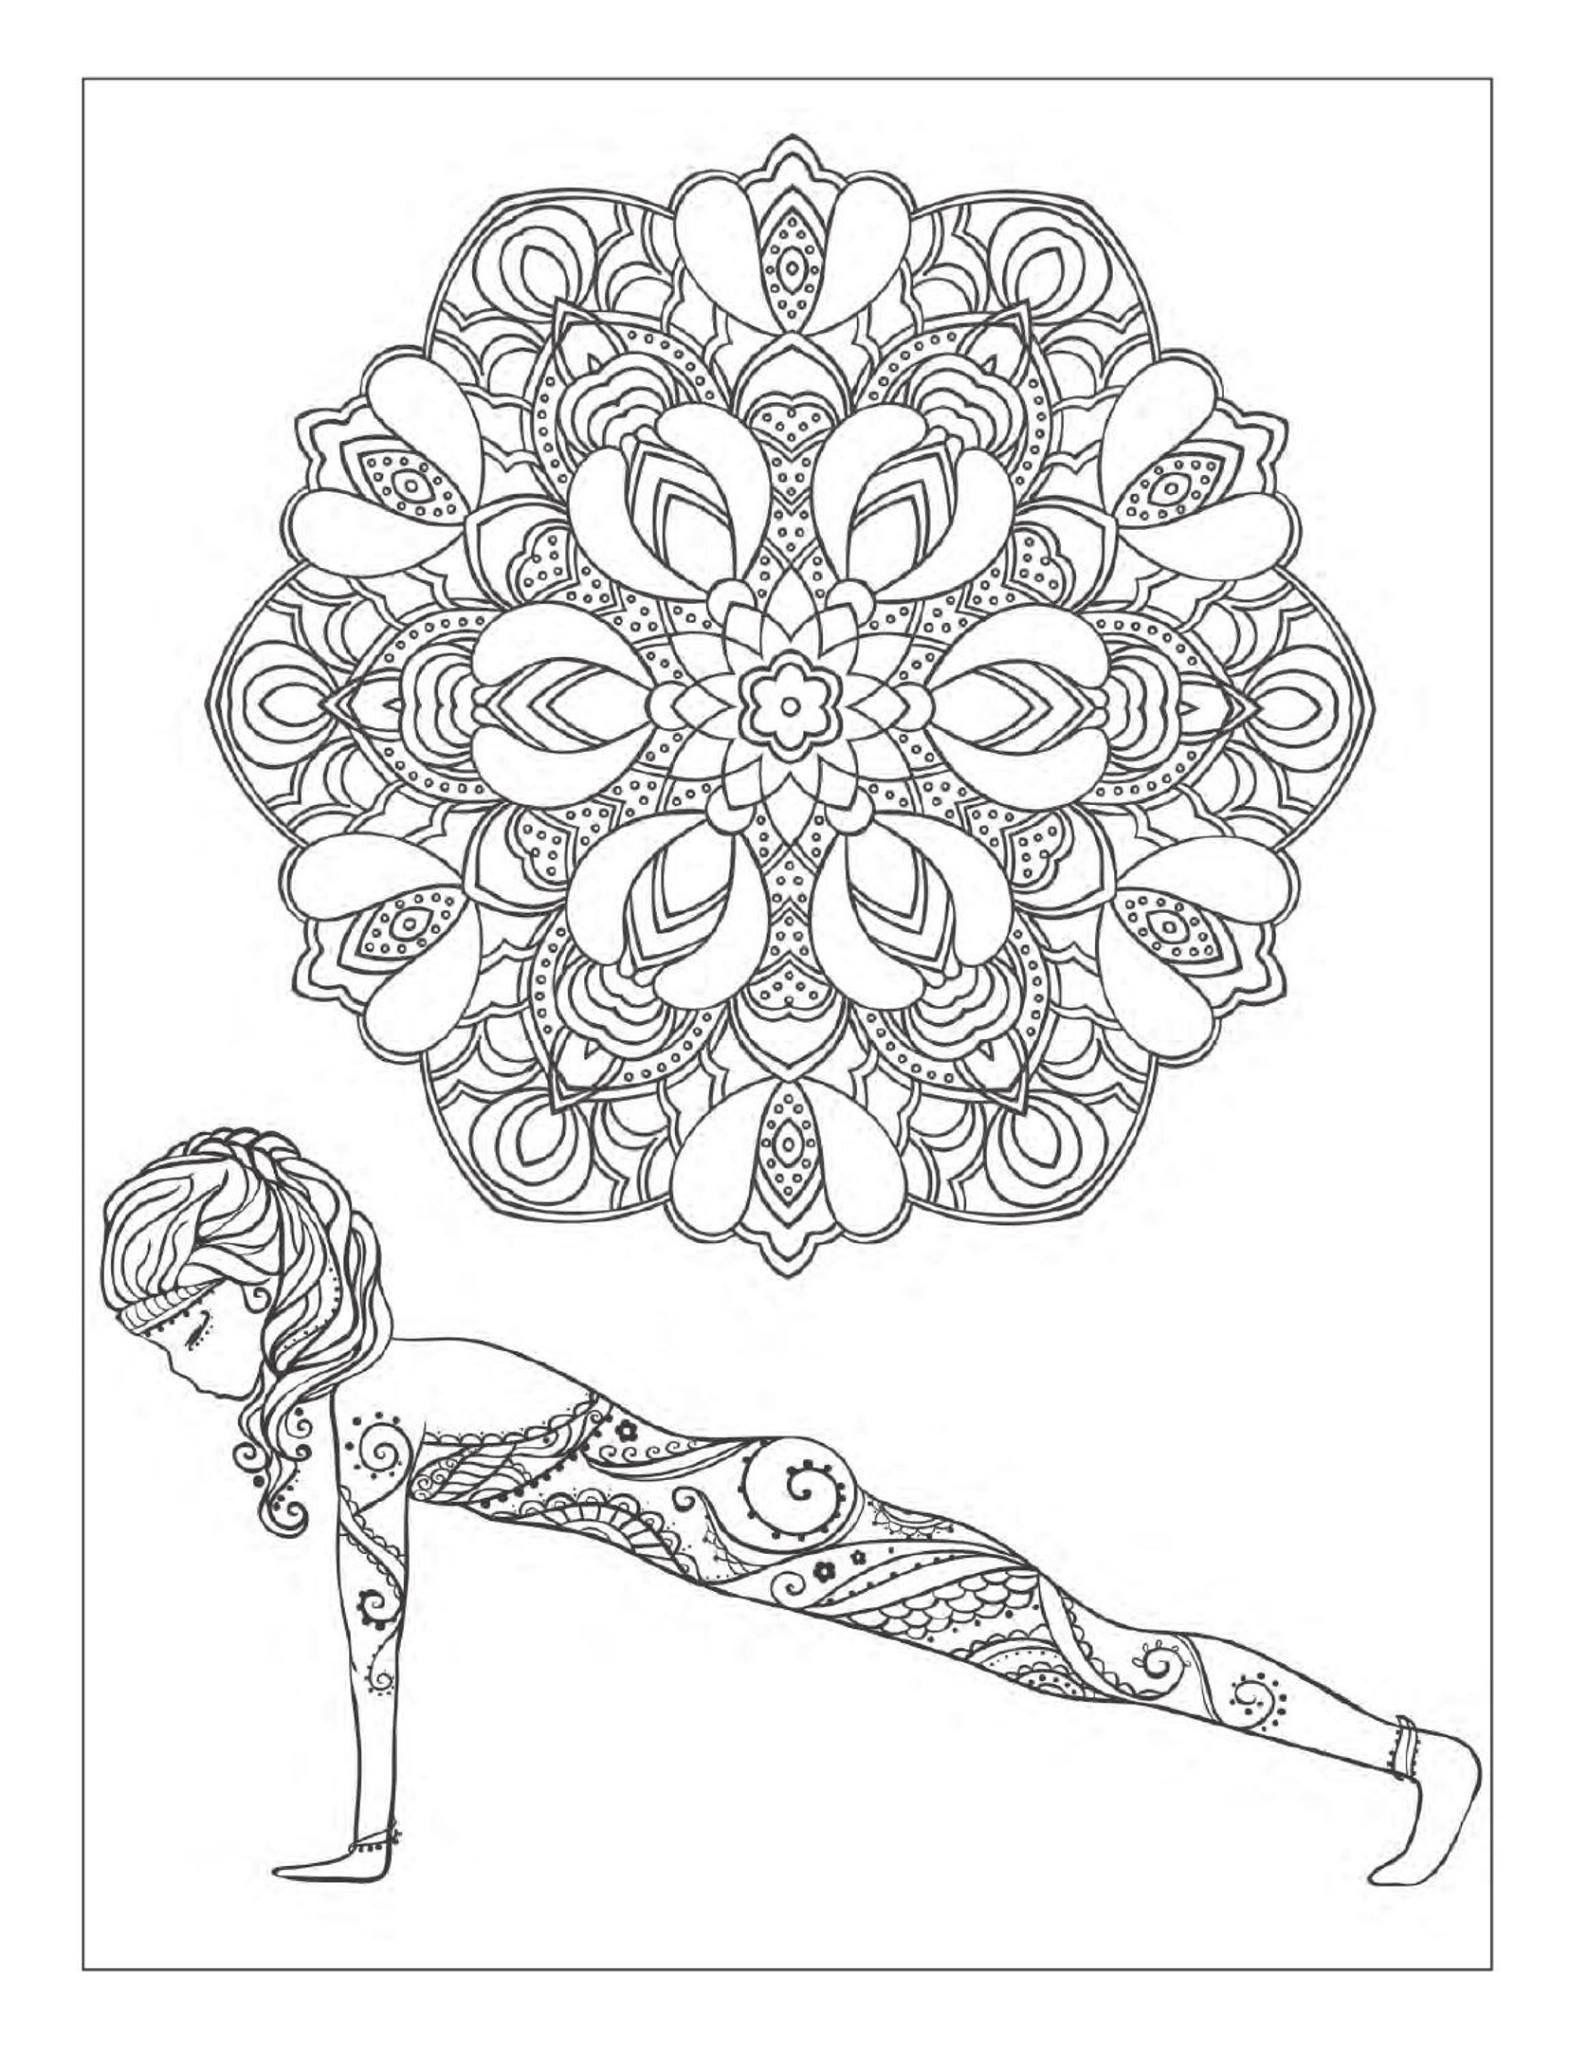 Pin By Nilam Shah On Yoga With Images Yoga Coloring Book